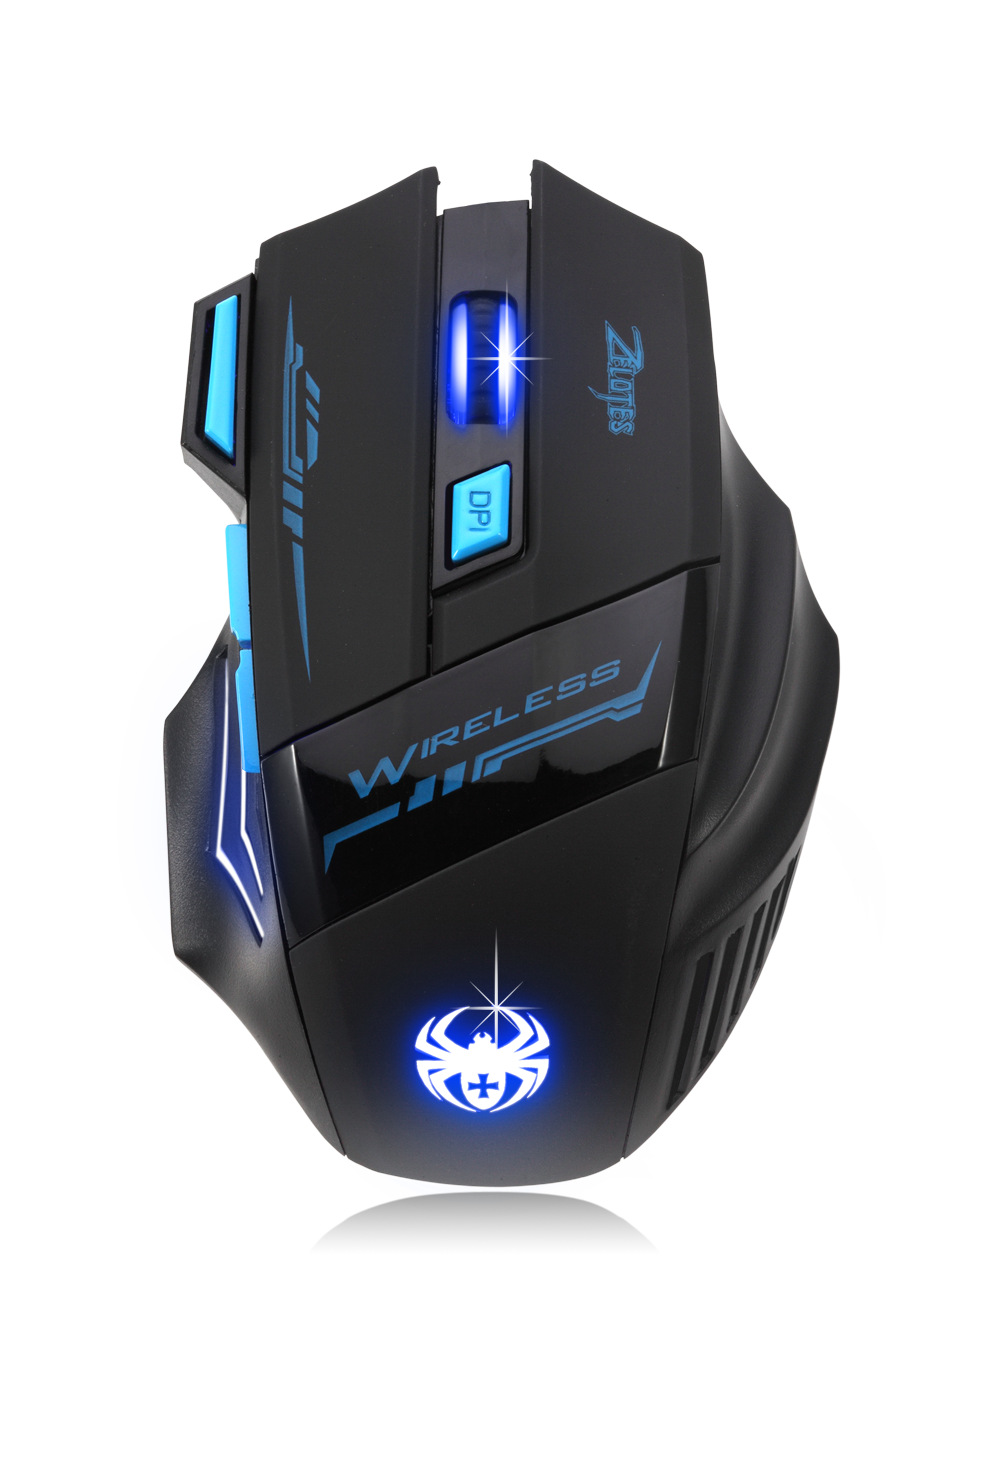 2016 New Wireless gaming mouse 2.4G wireless mouse backlight 2400dpi computer wireless mice